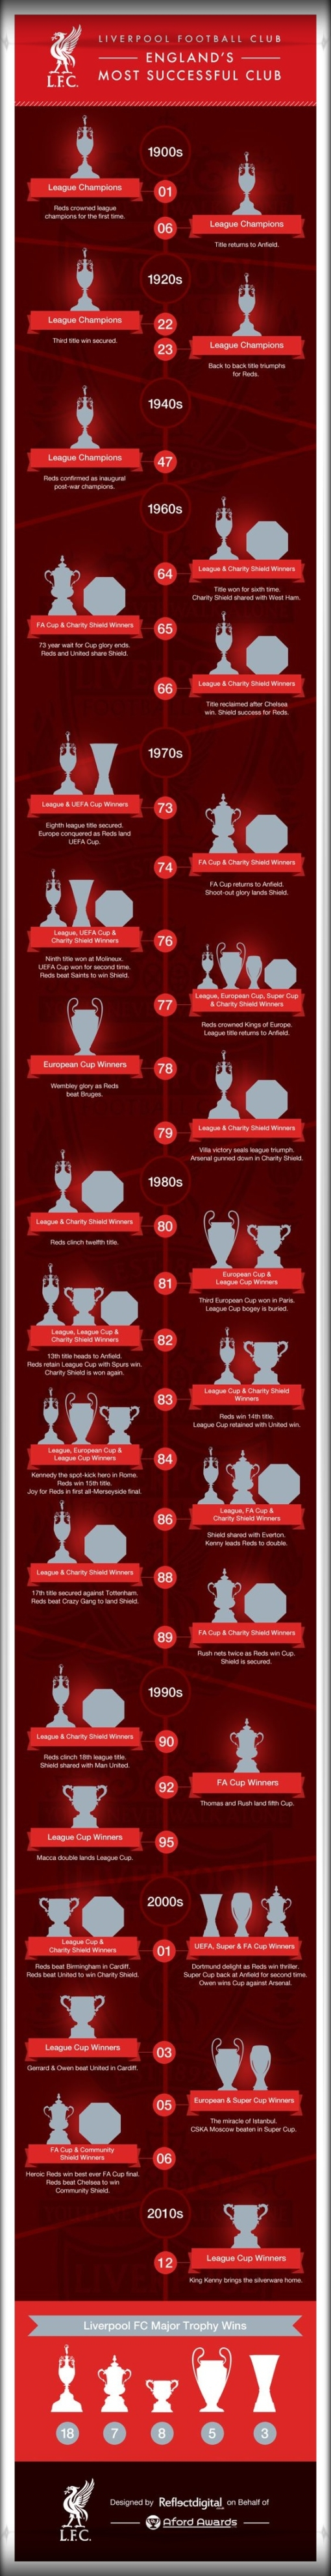 Liverpool FC Most Successful Team In England Britain